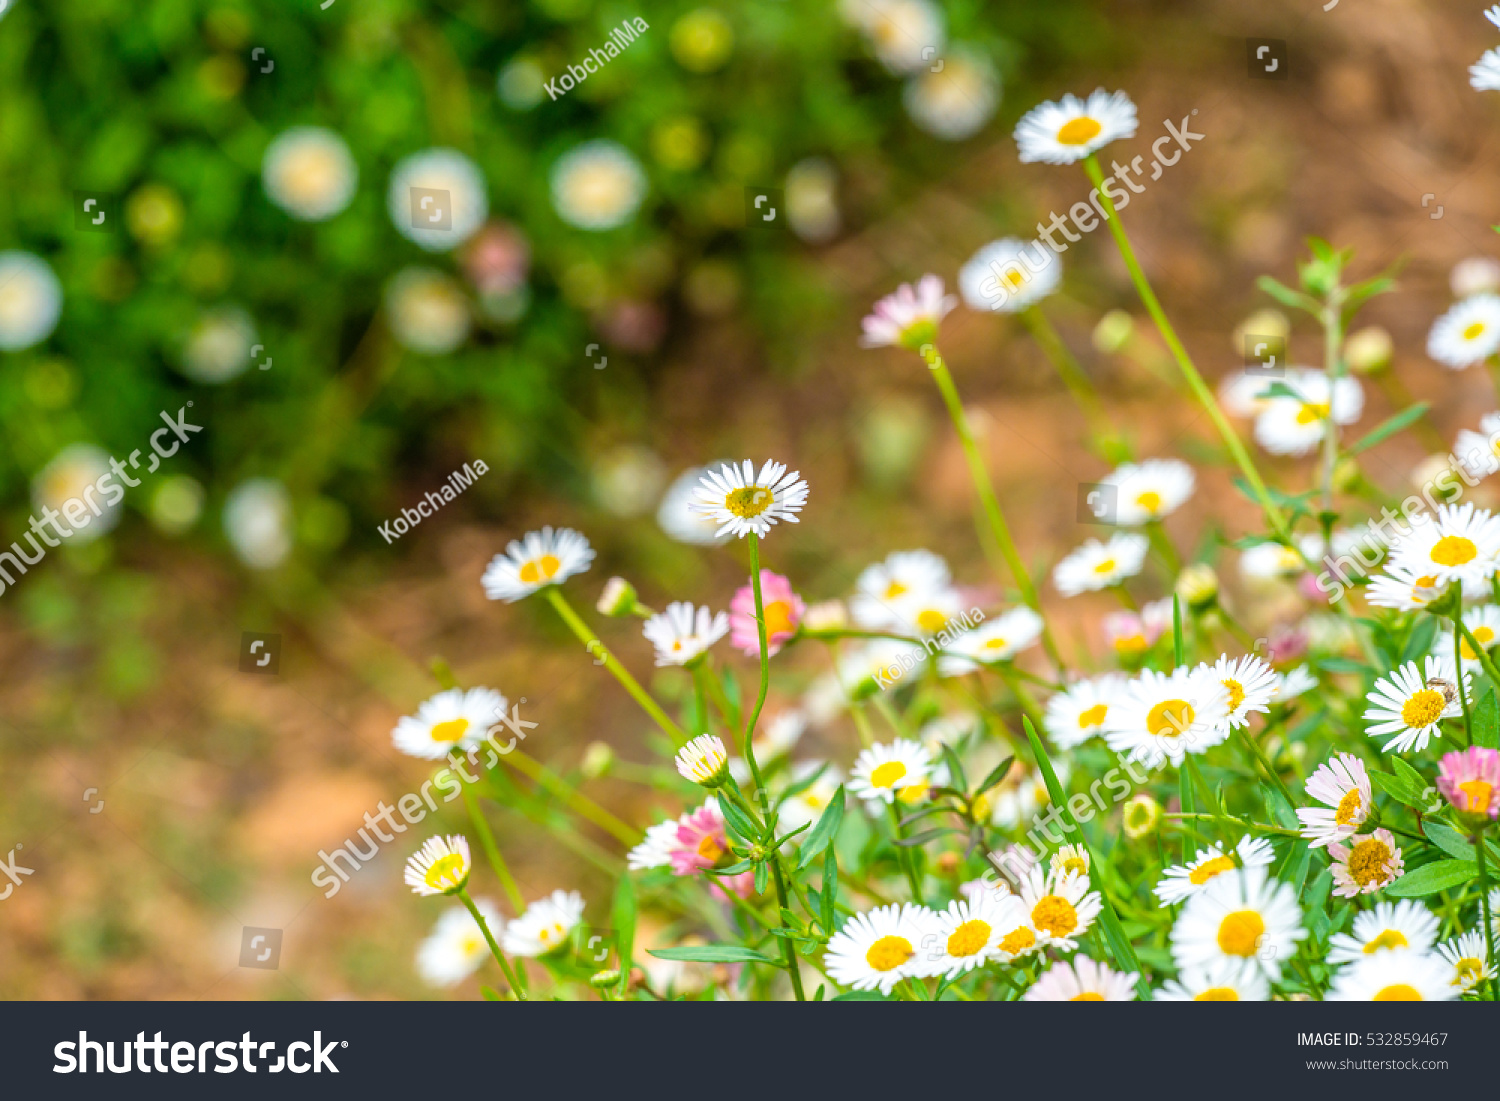 Little white flowers in the park thailand ez canvas id 532859467 izmirmasajfo